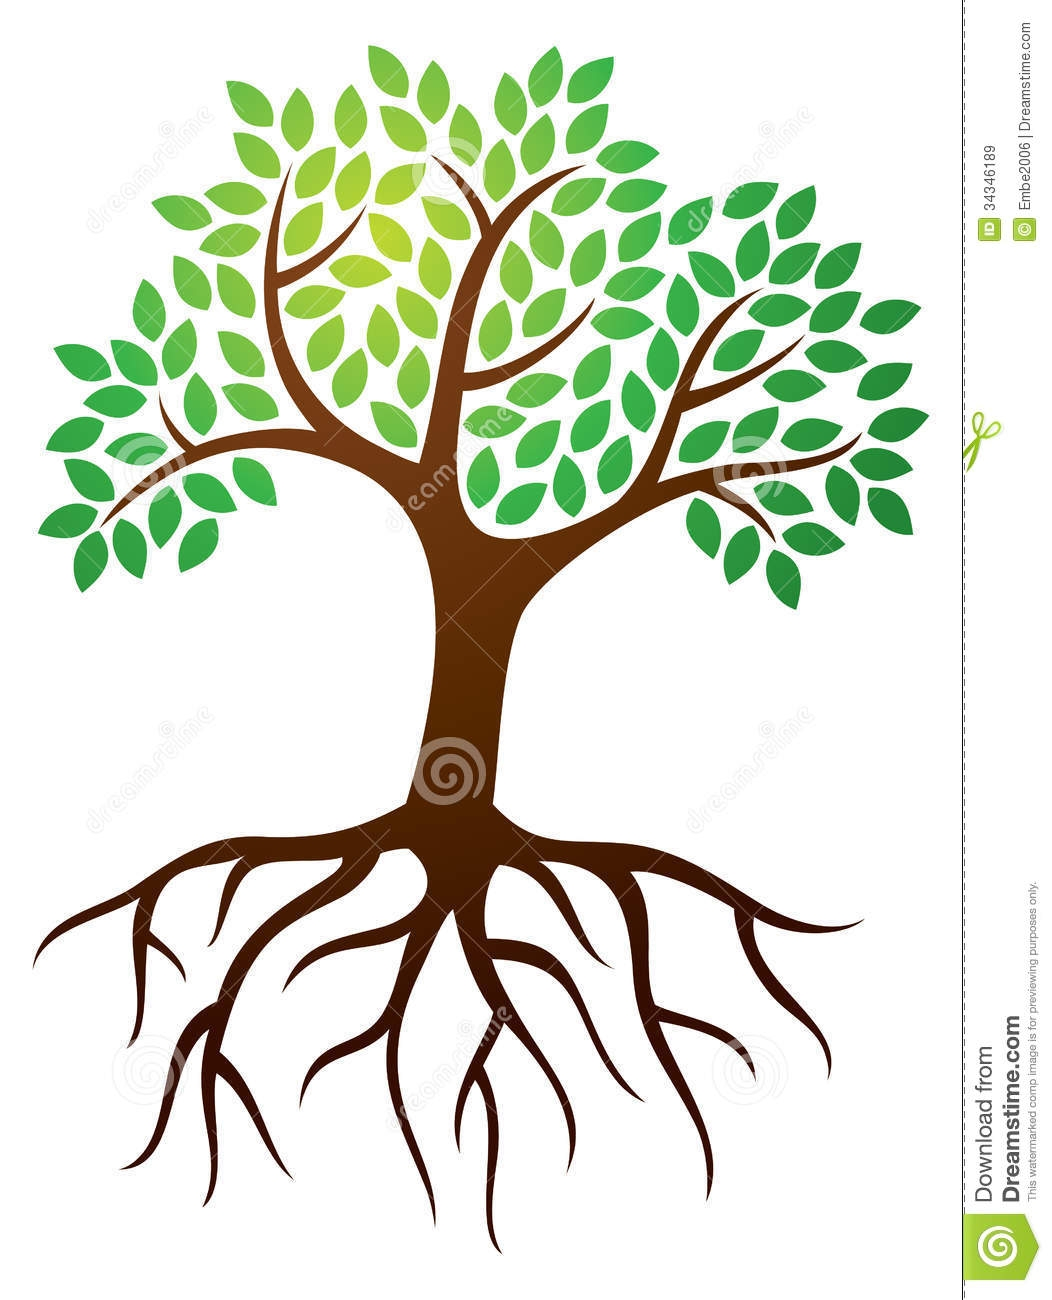 Roots clipart tree sprout Roots com logos Trees clipartsgram